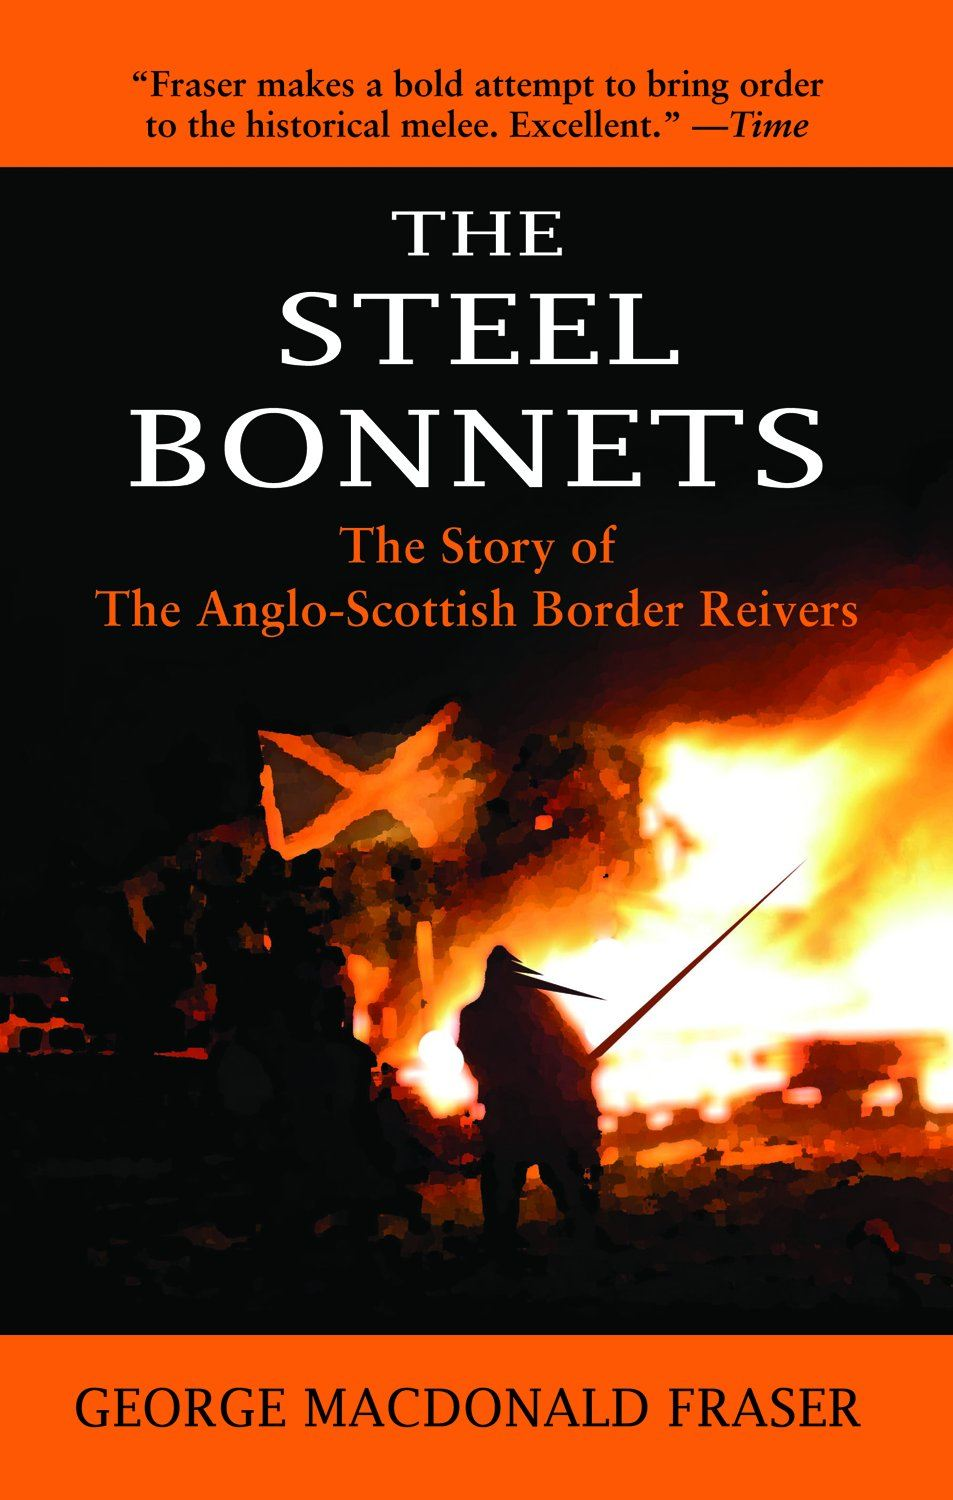 The Steel Bonnets: The Story of the Anglo-Scottish Border Reivers By: George MacDonald Fraser